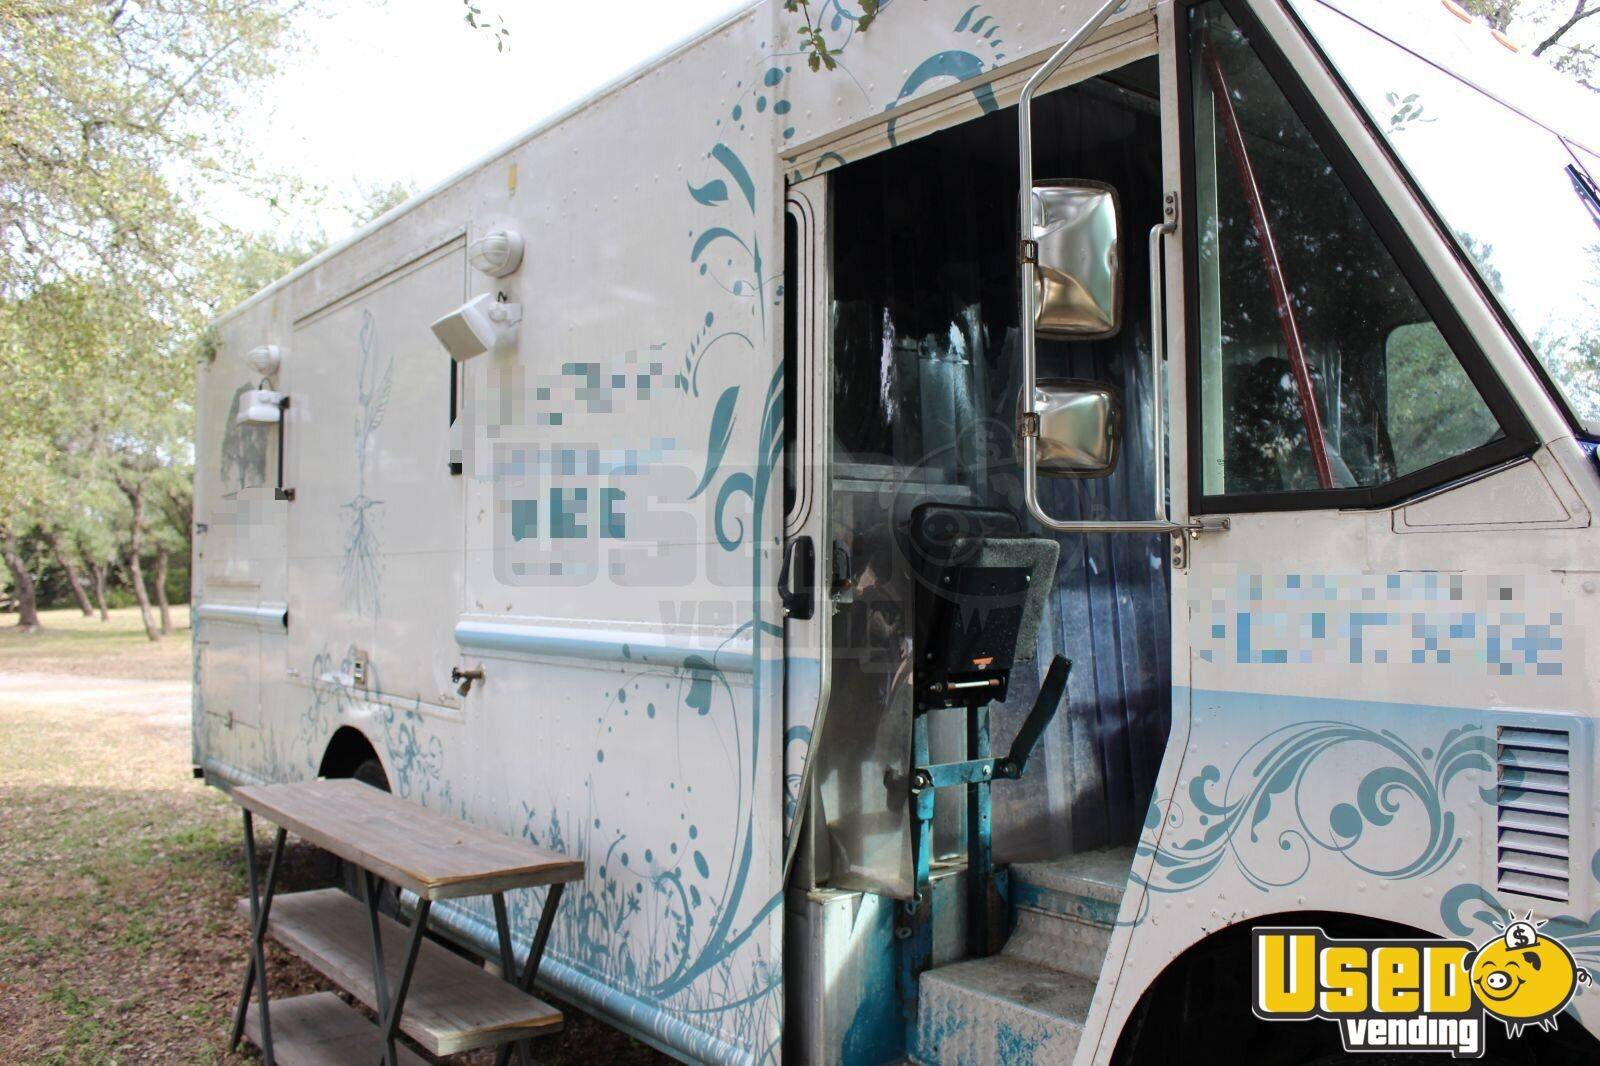 2008 Freightliner Mt-45 All-purpose Food Truck Stainless Steel Wall Covers Texas Diesel Engine for Sale - 4